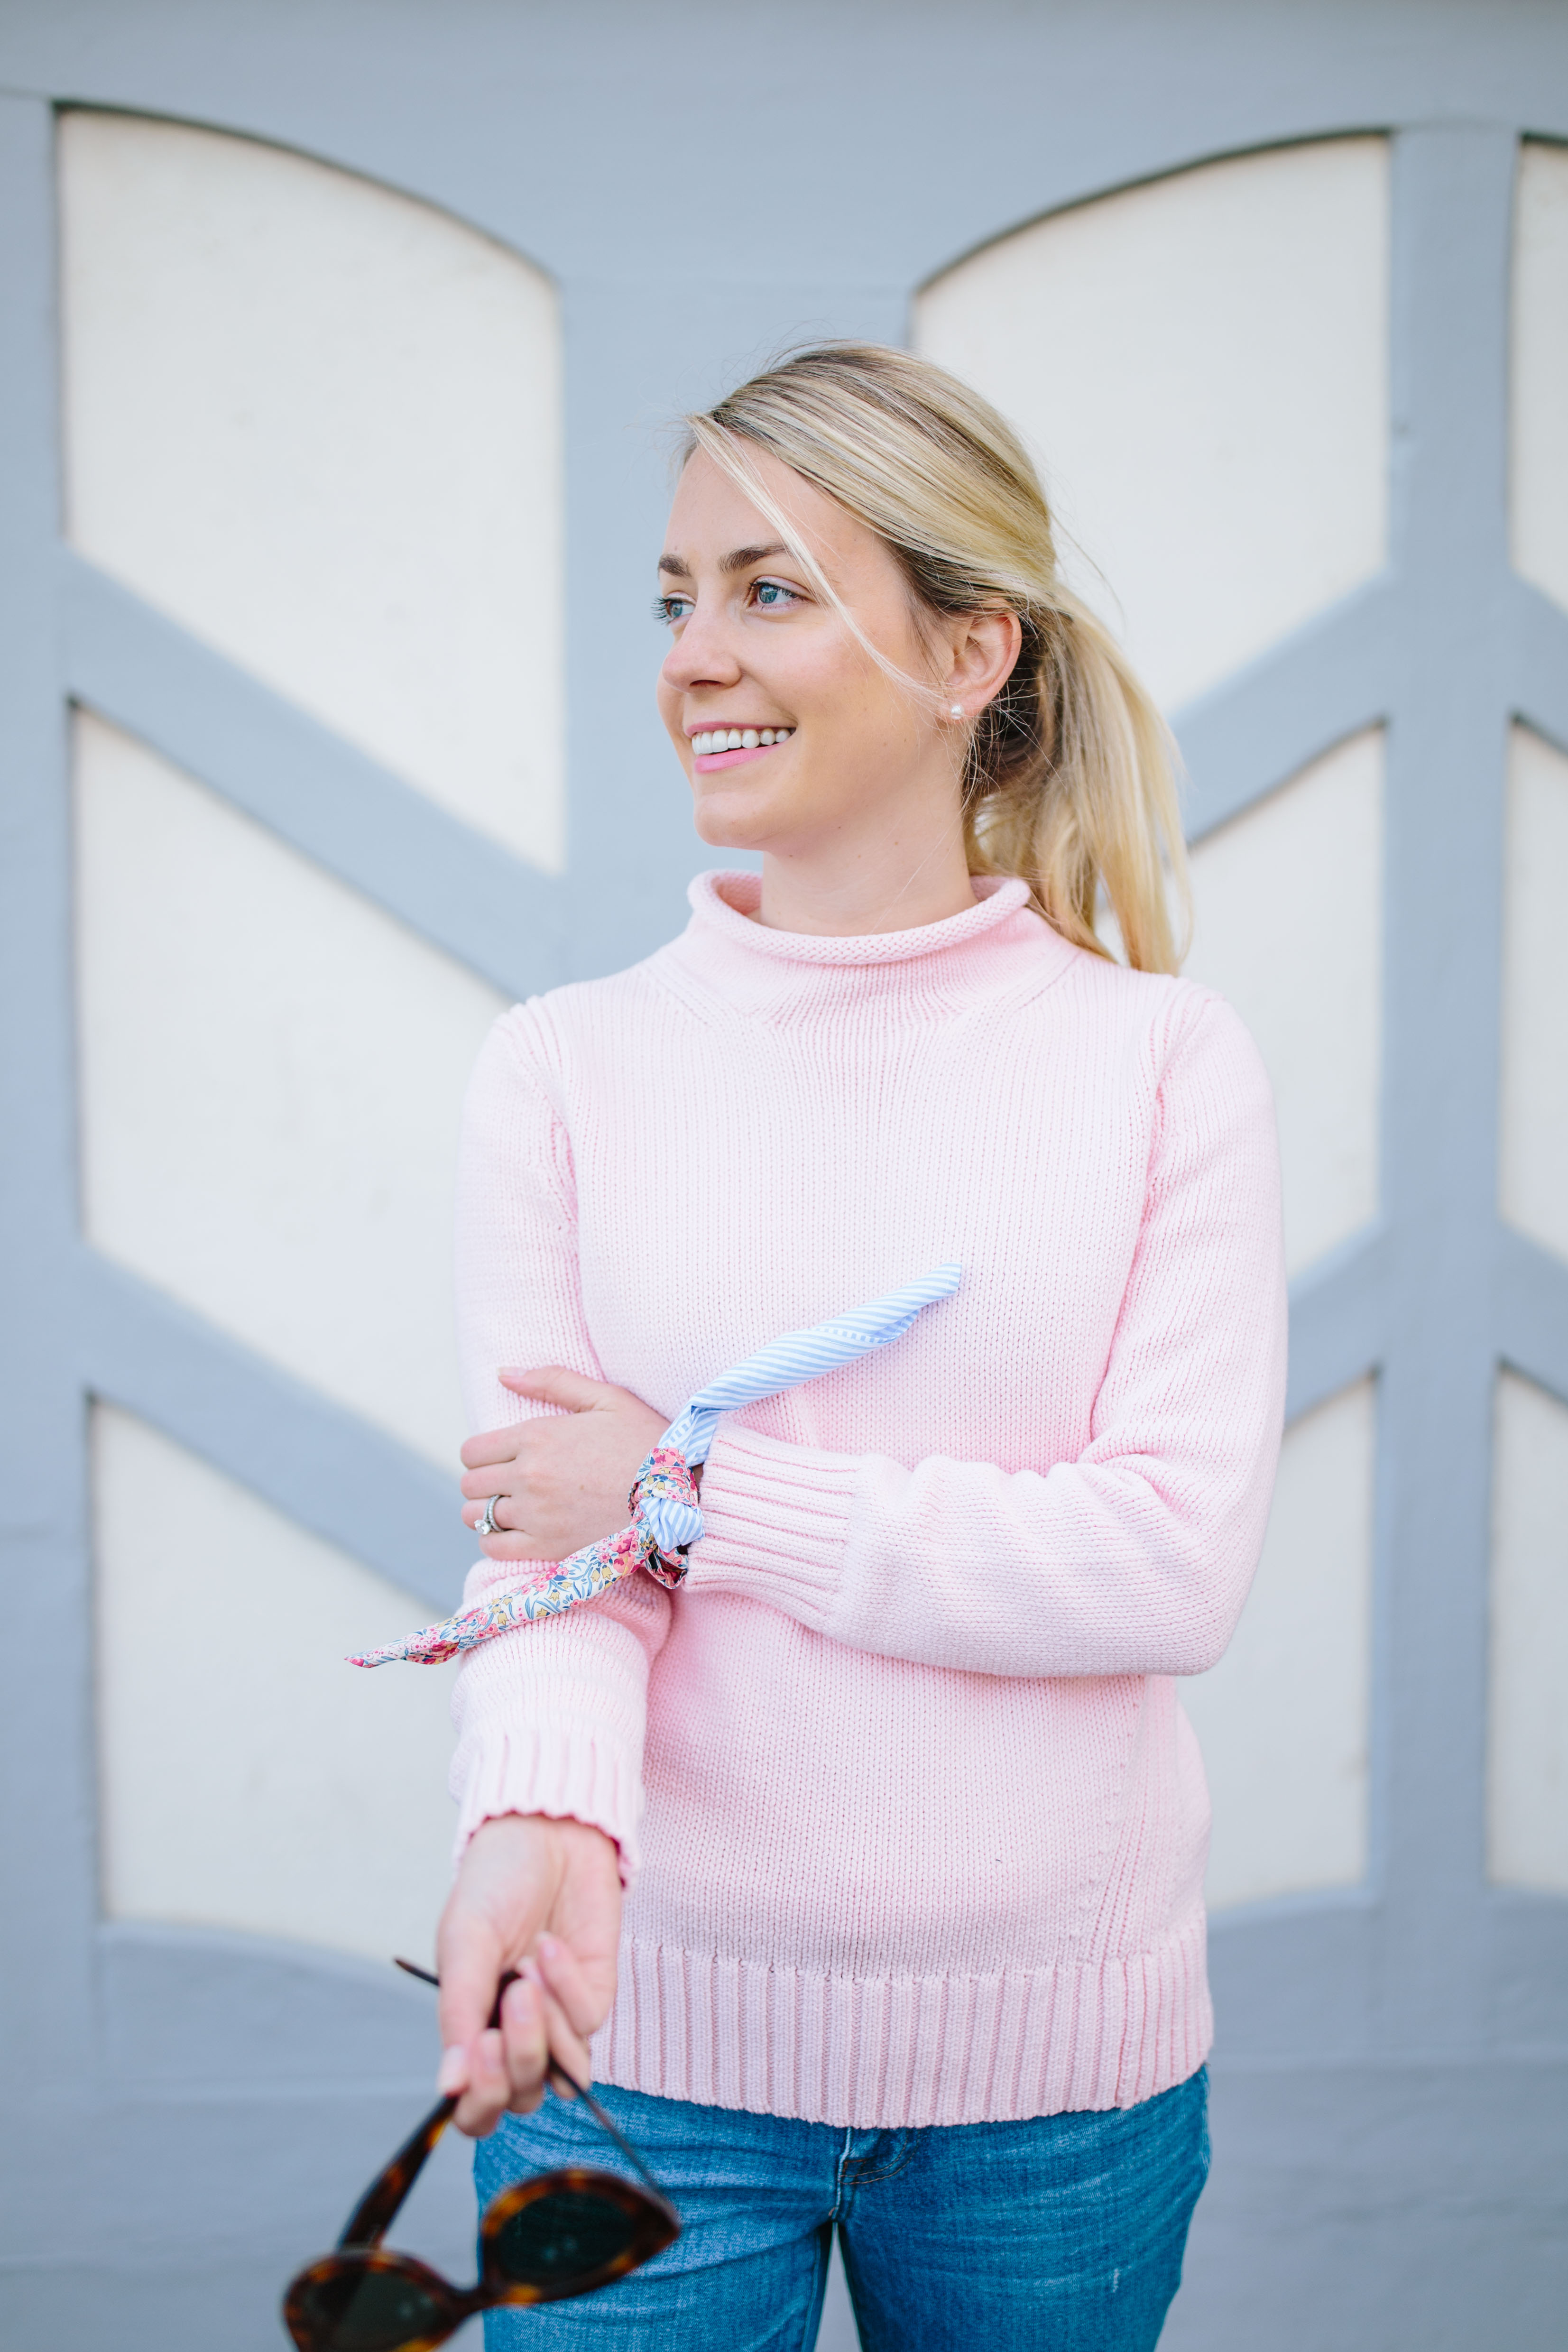 Jillian Attaway shares her favorite sweater for spring and reminds us all, J.Crew Always // Rhyme & Reason